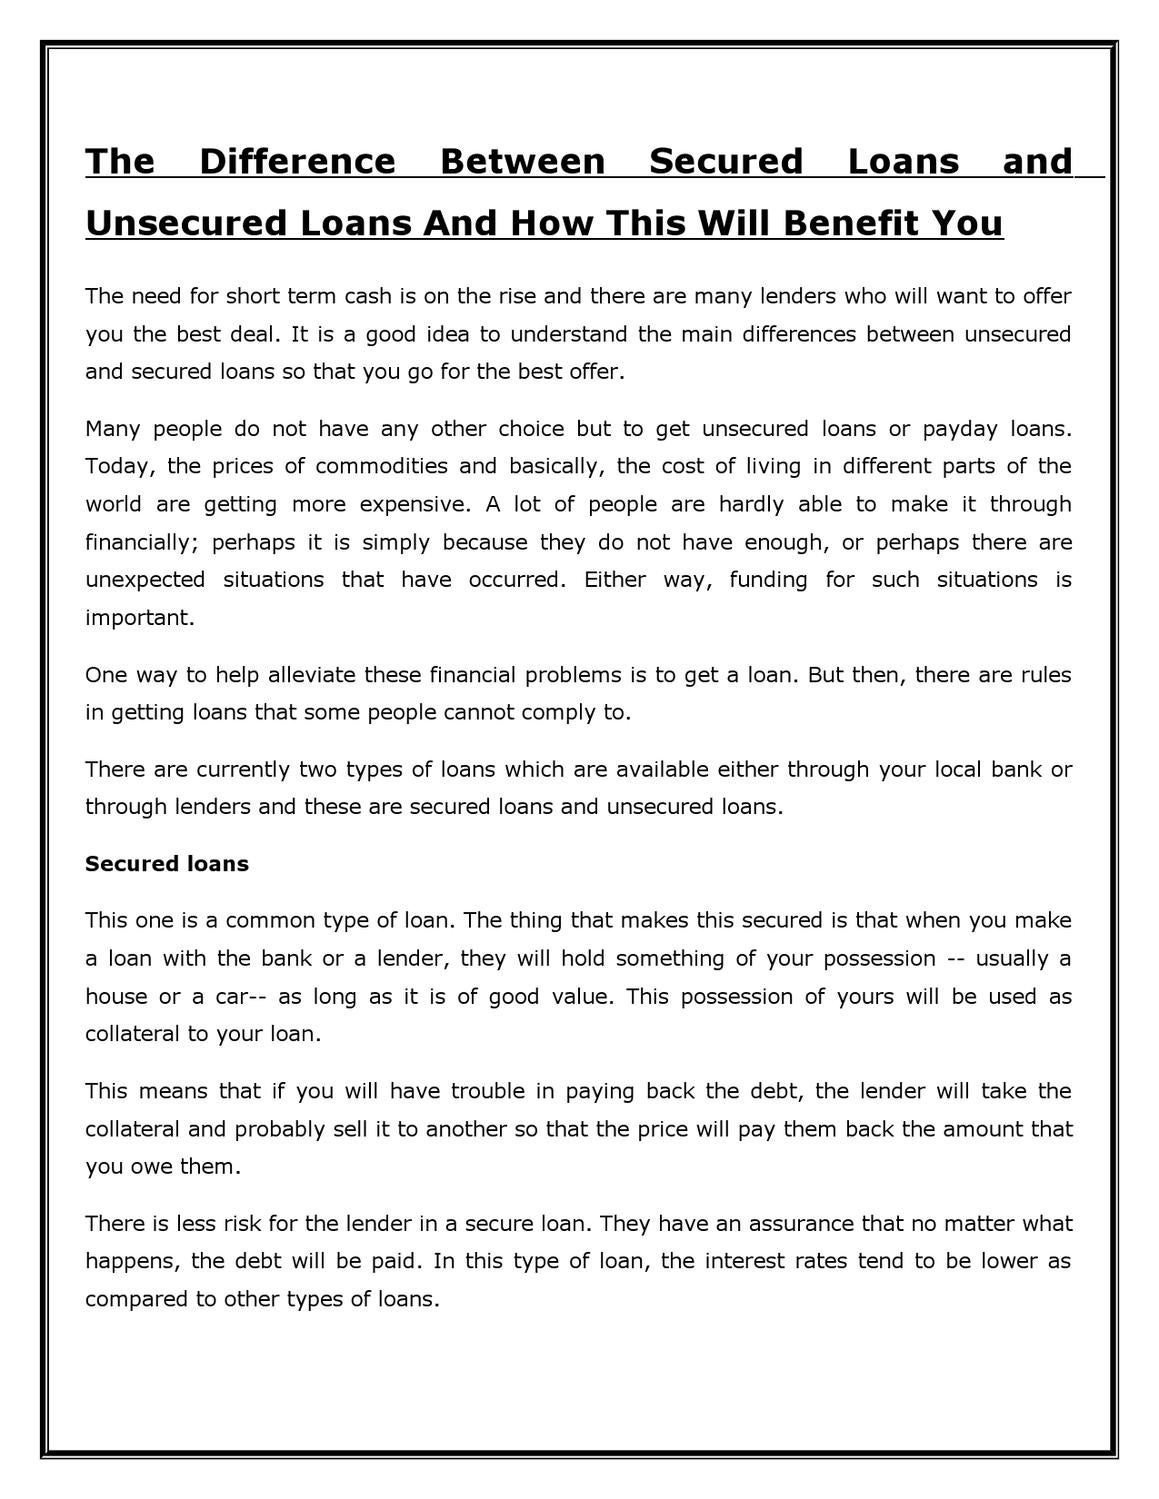 The difference between secured and unsecured